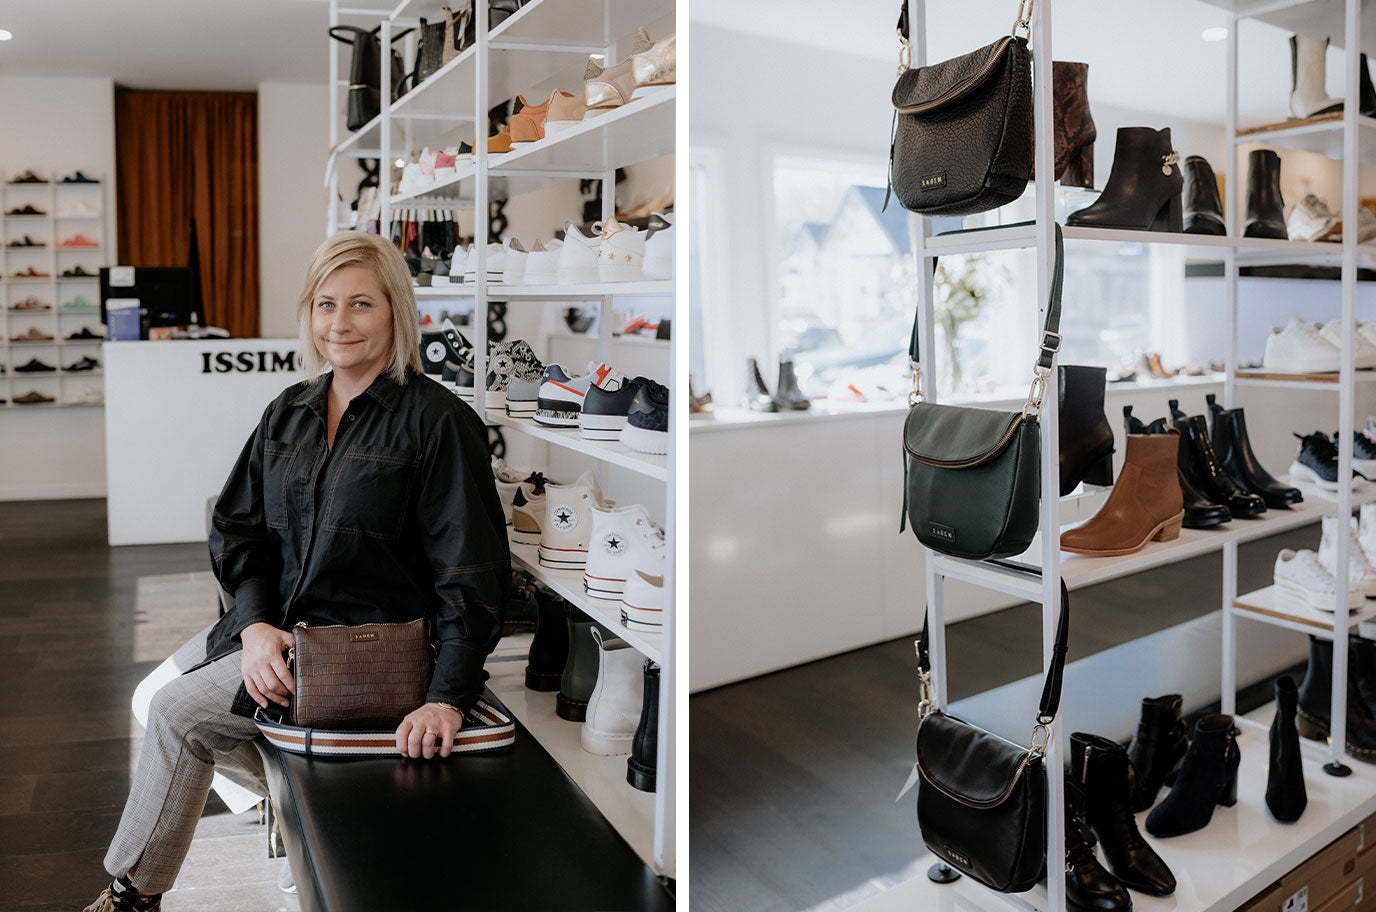 belind from issimo christchurch with her favourite saben leather bag in brown croc